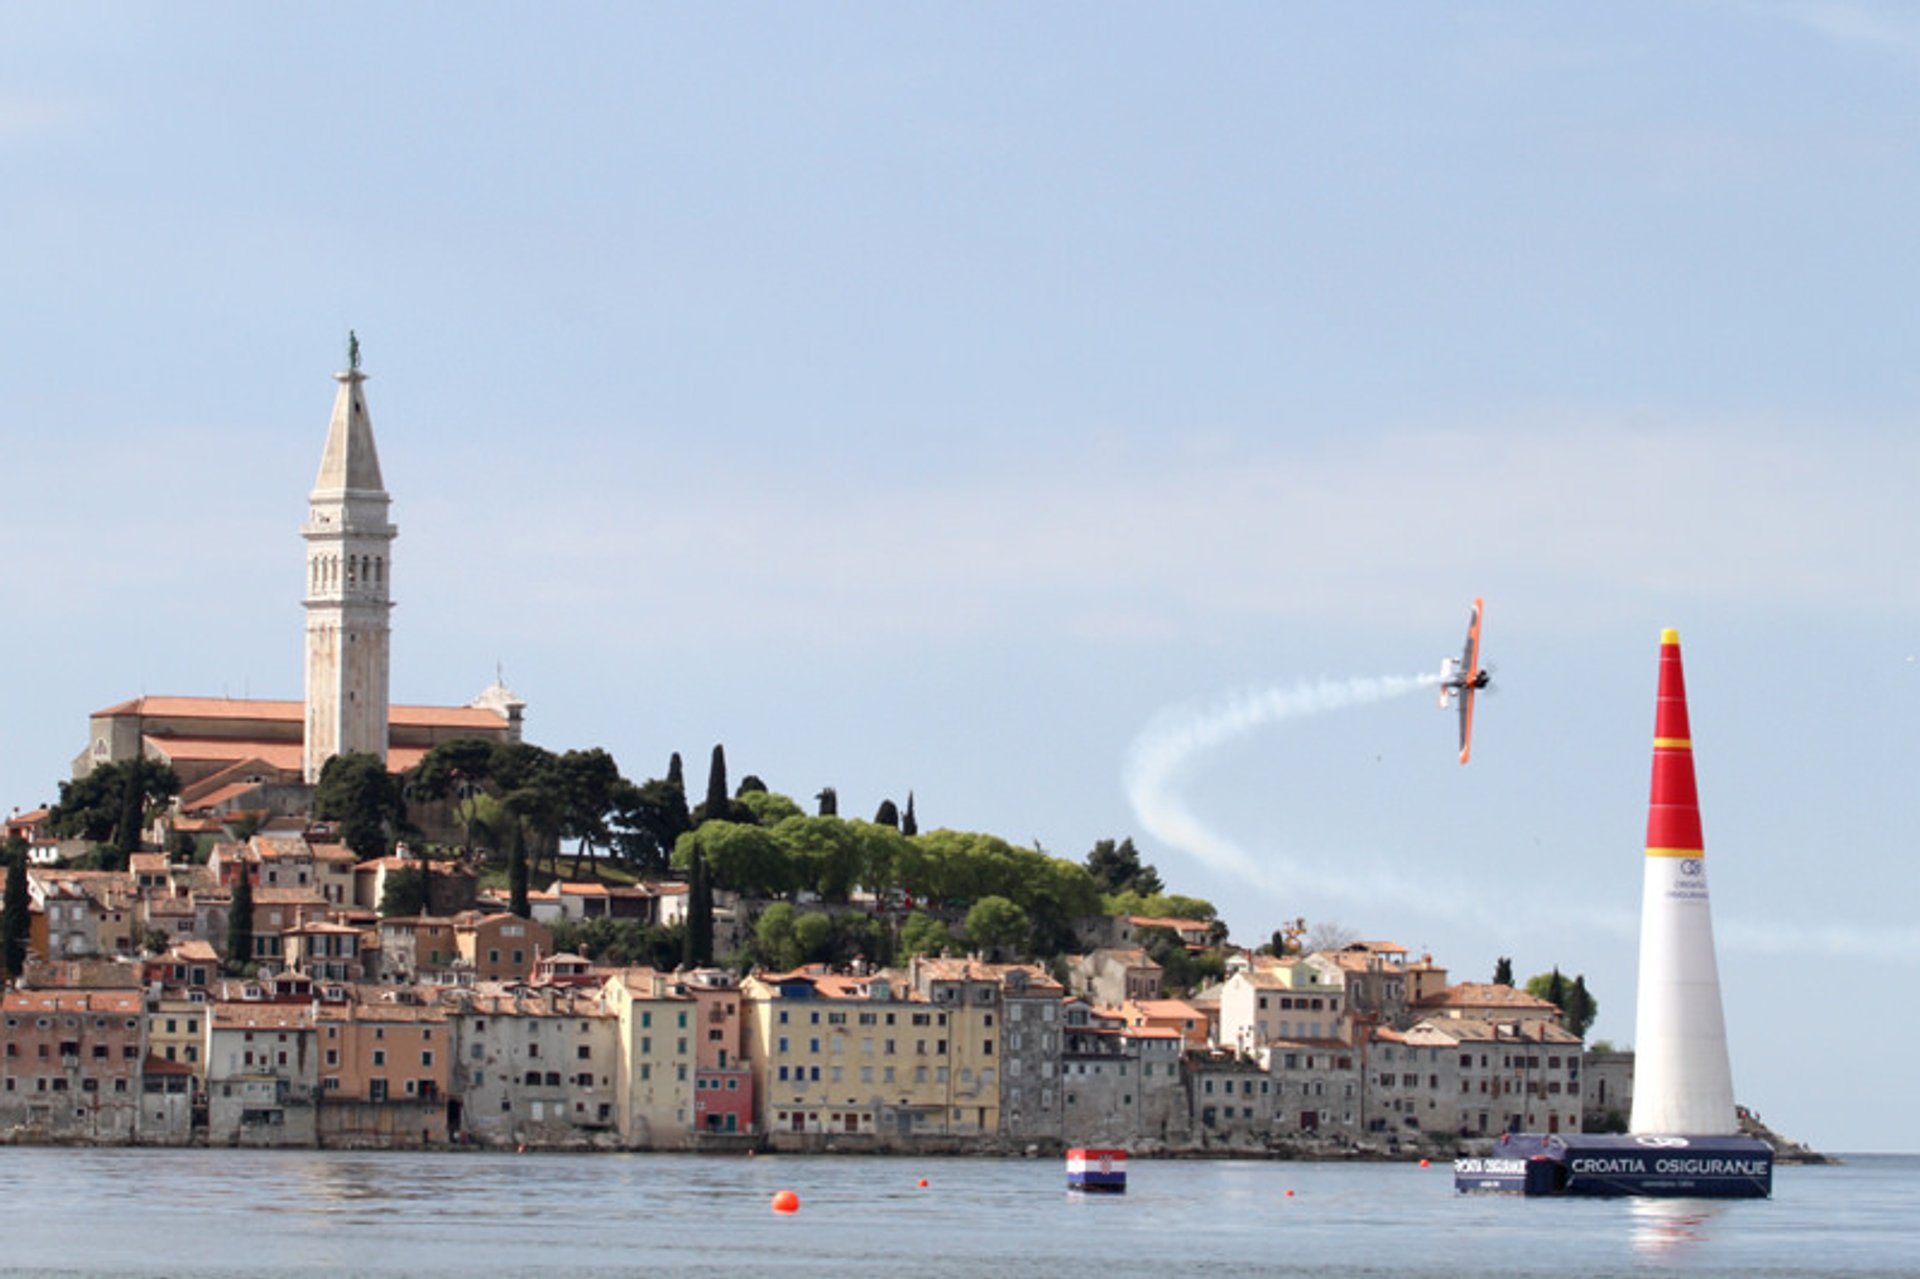 Red Bull Air Race 2015 in Croatia - Dates & Map